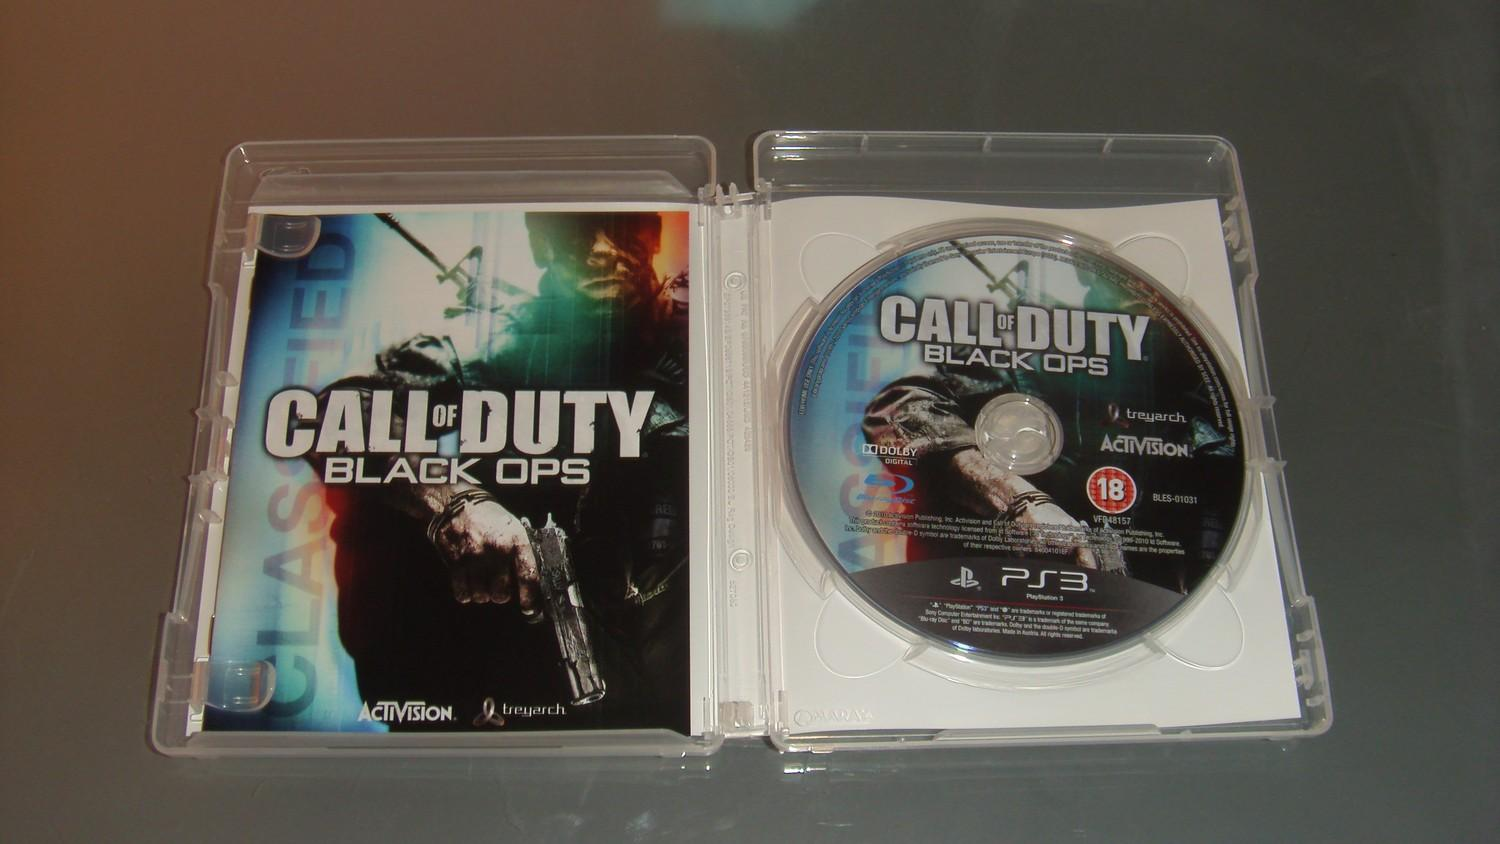 black ops 7 weebeetroc [arrivage] Call Of Duty Black Ops sur PlayStation 3